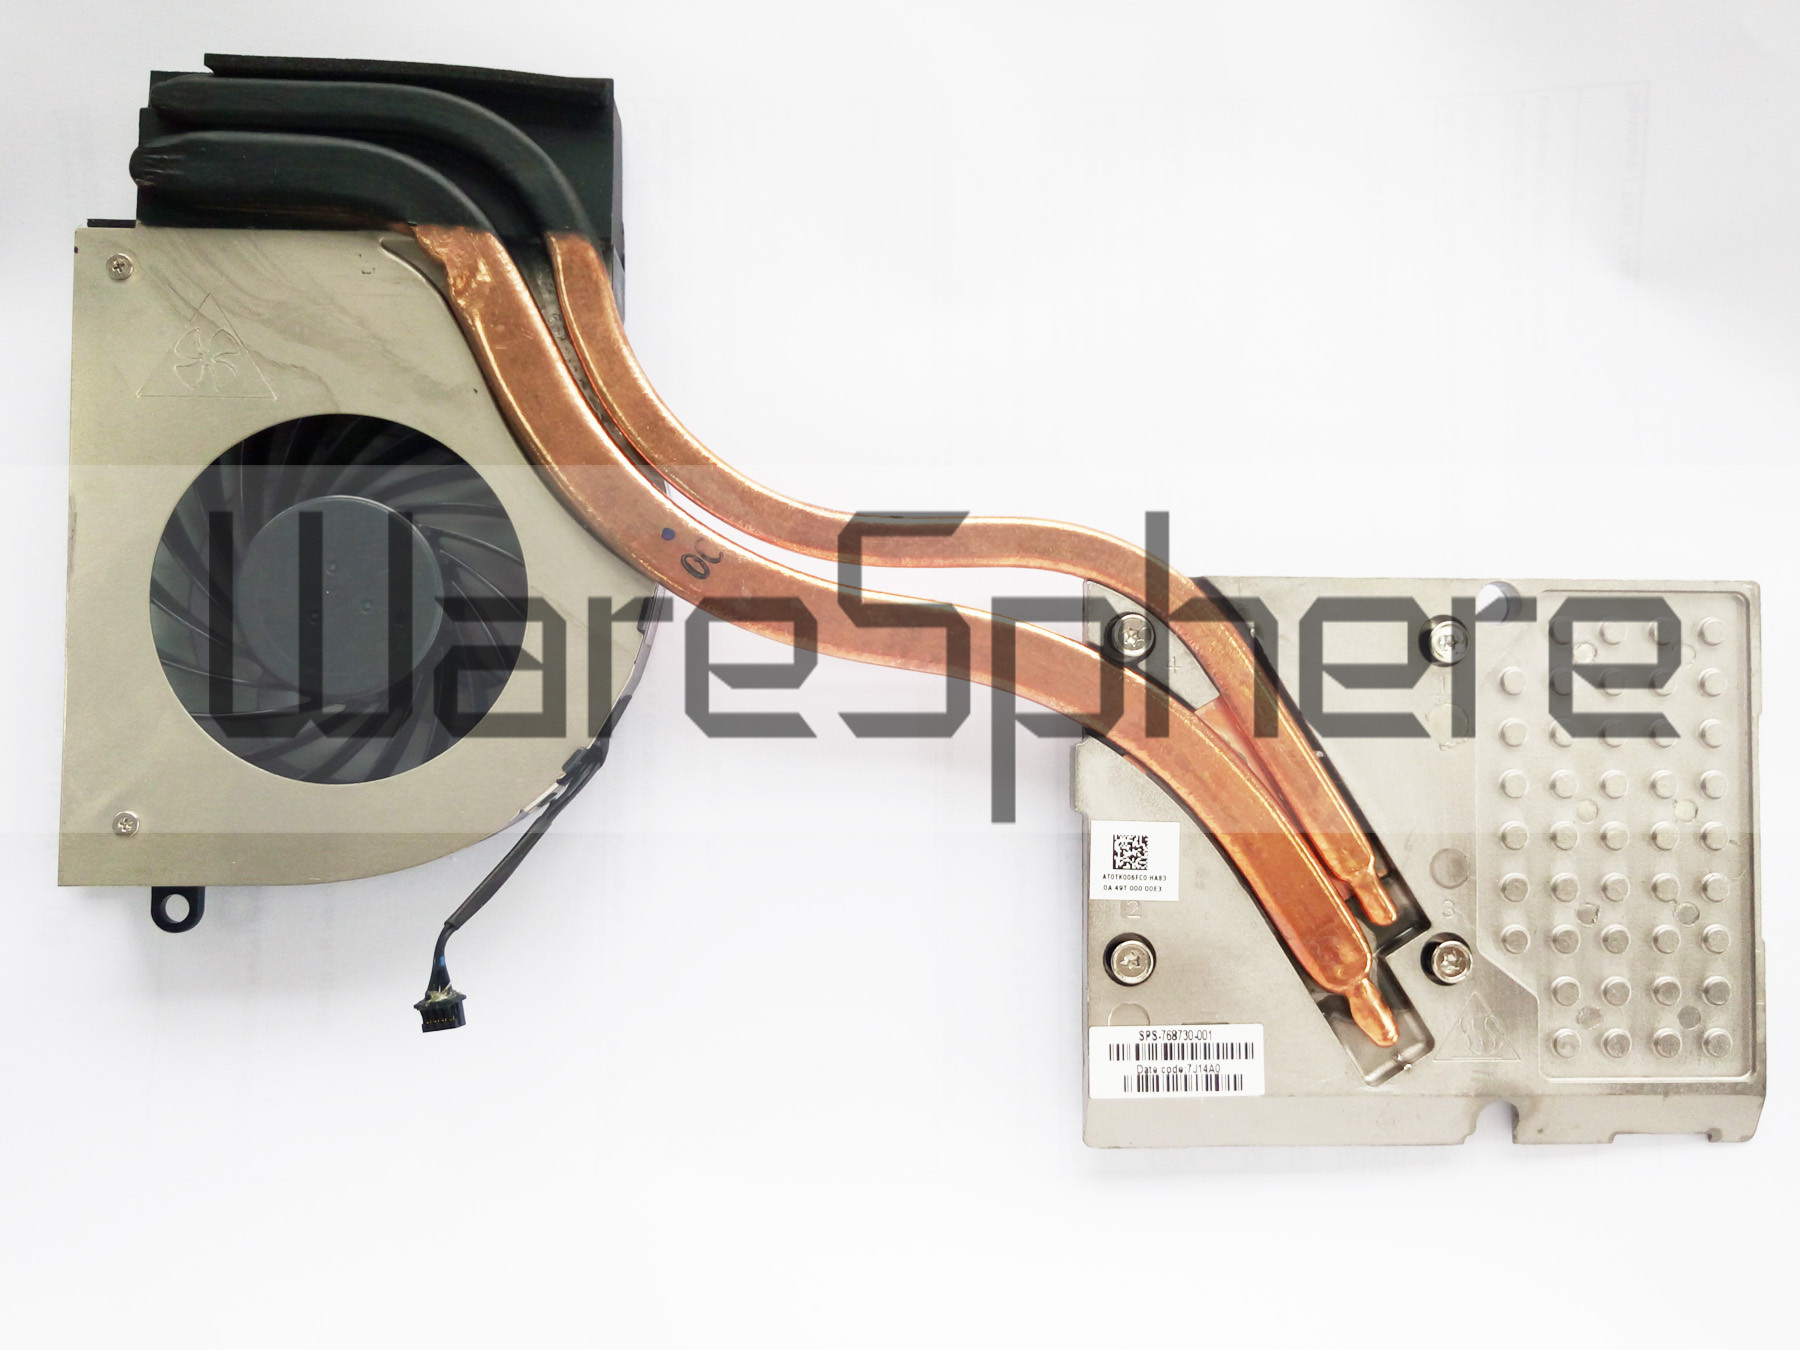 Graphics Heatsink and Fan for HP ZBOOK 17 NVIDIA Quadro K1100M MXM-N15P-Q1 768730-001